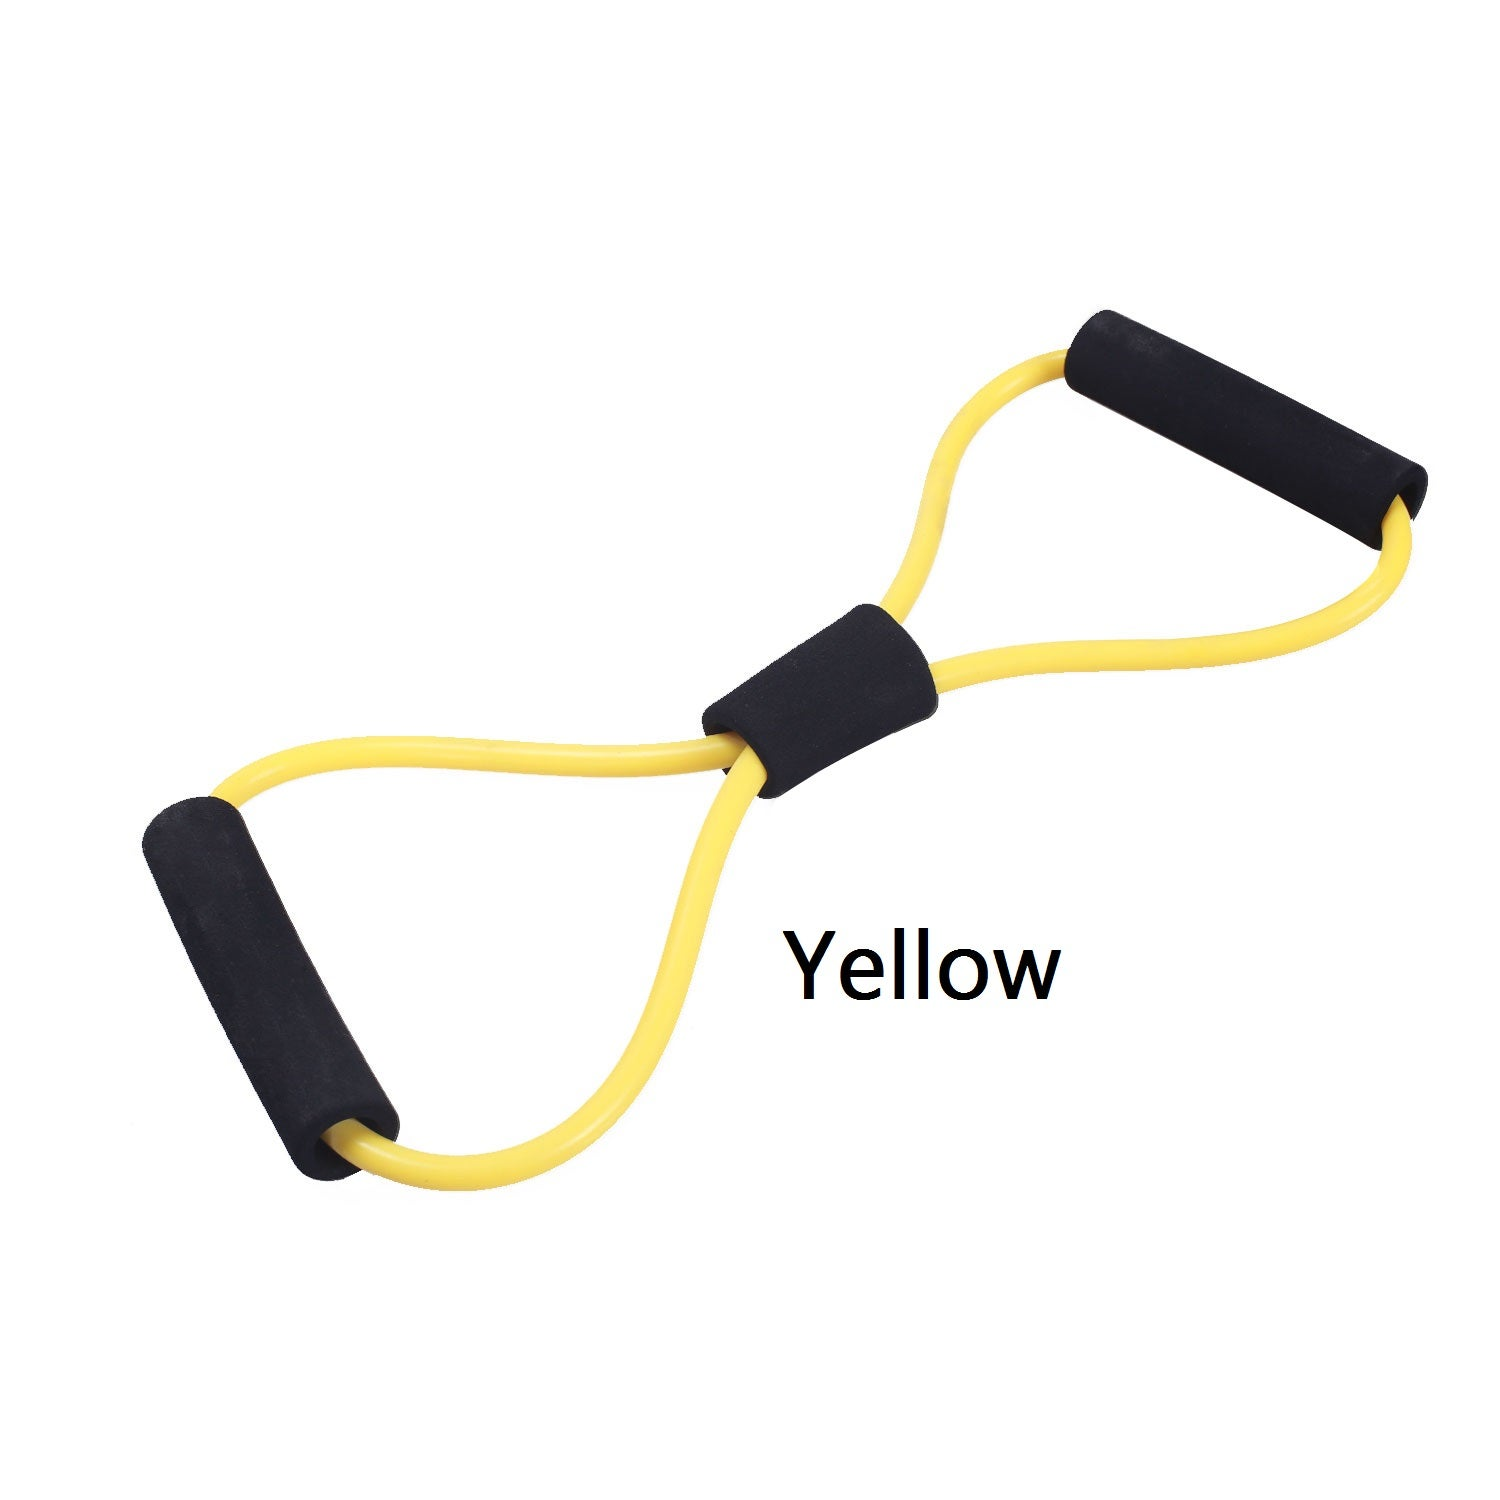 Adeco Toner Resistance Exercise Band